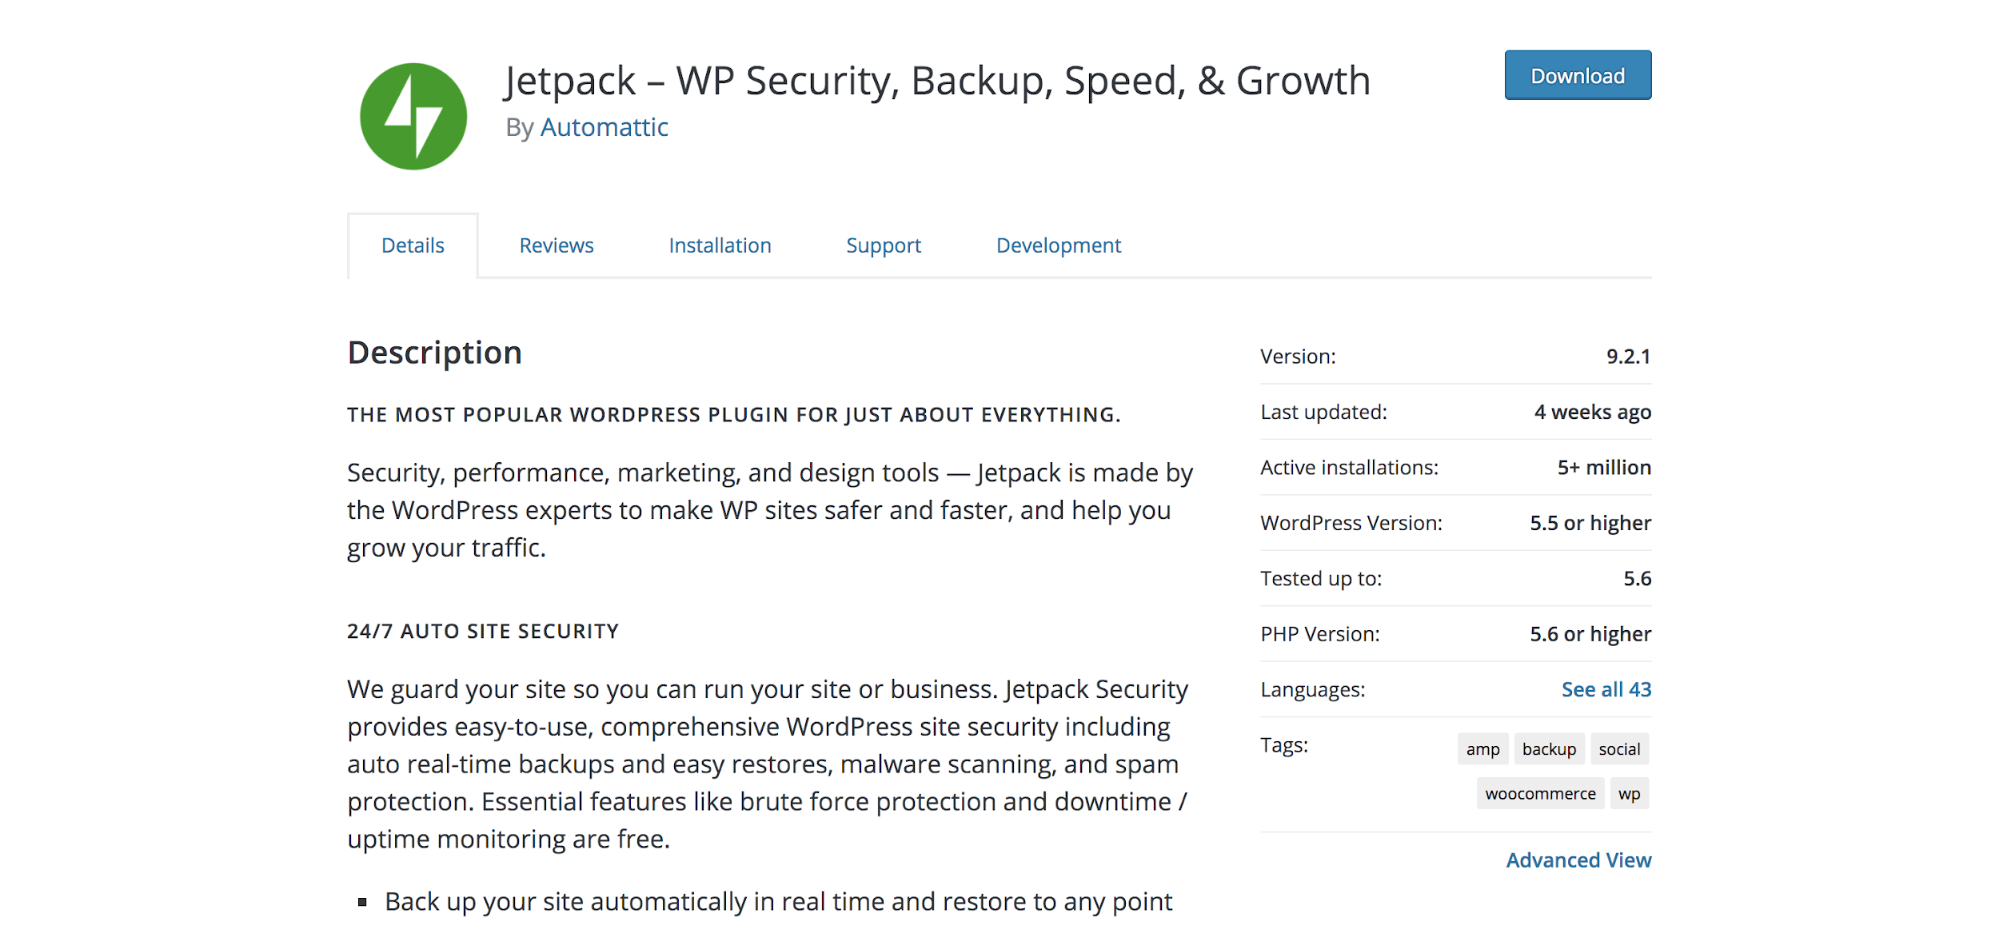 Jetpack plugin page in the WordPress repository